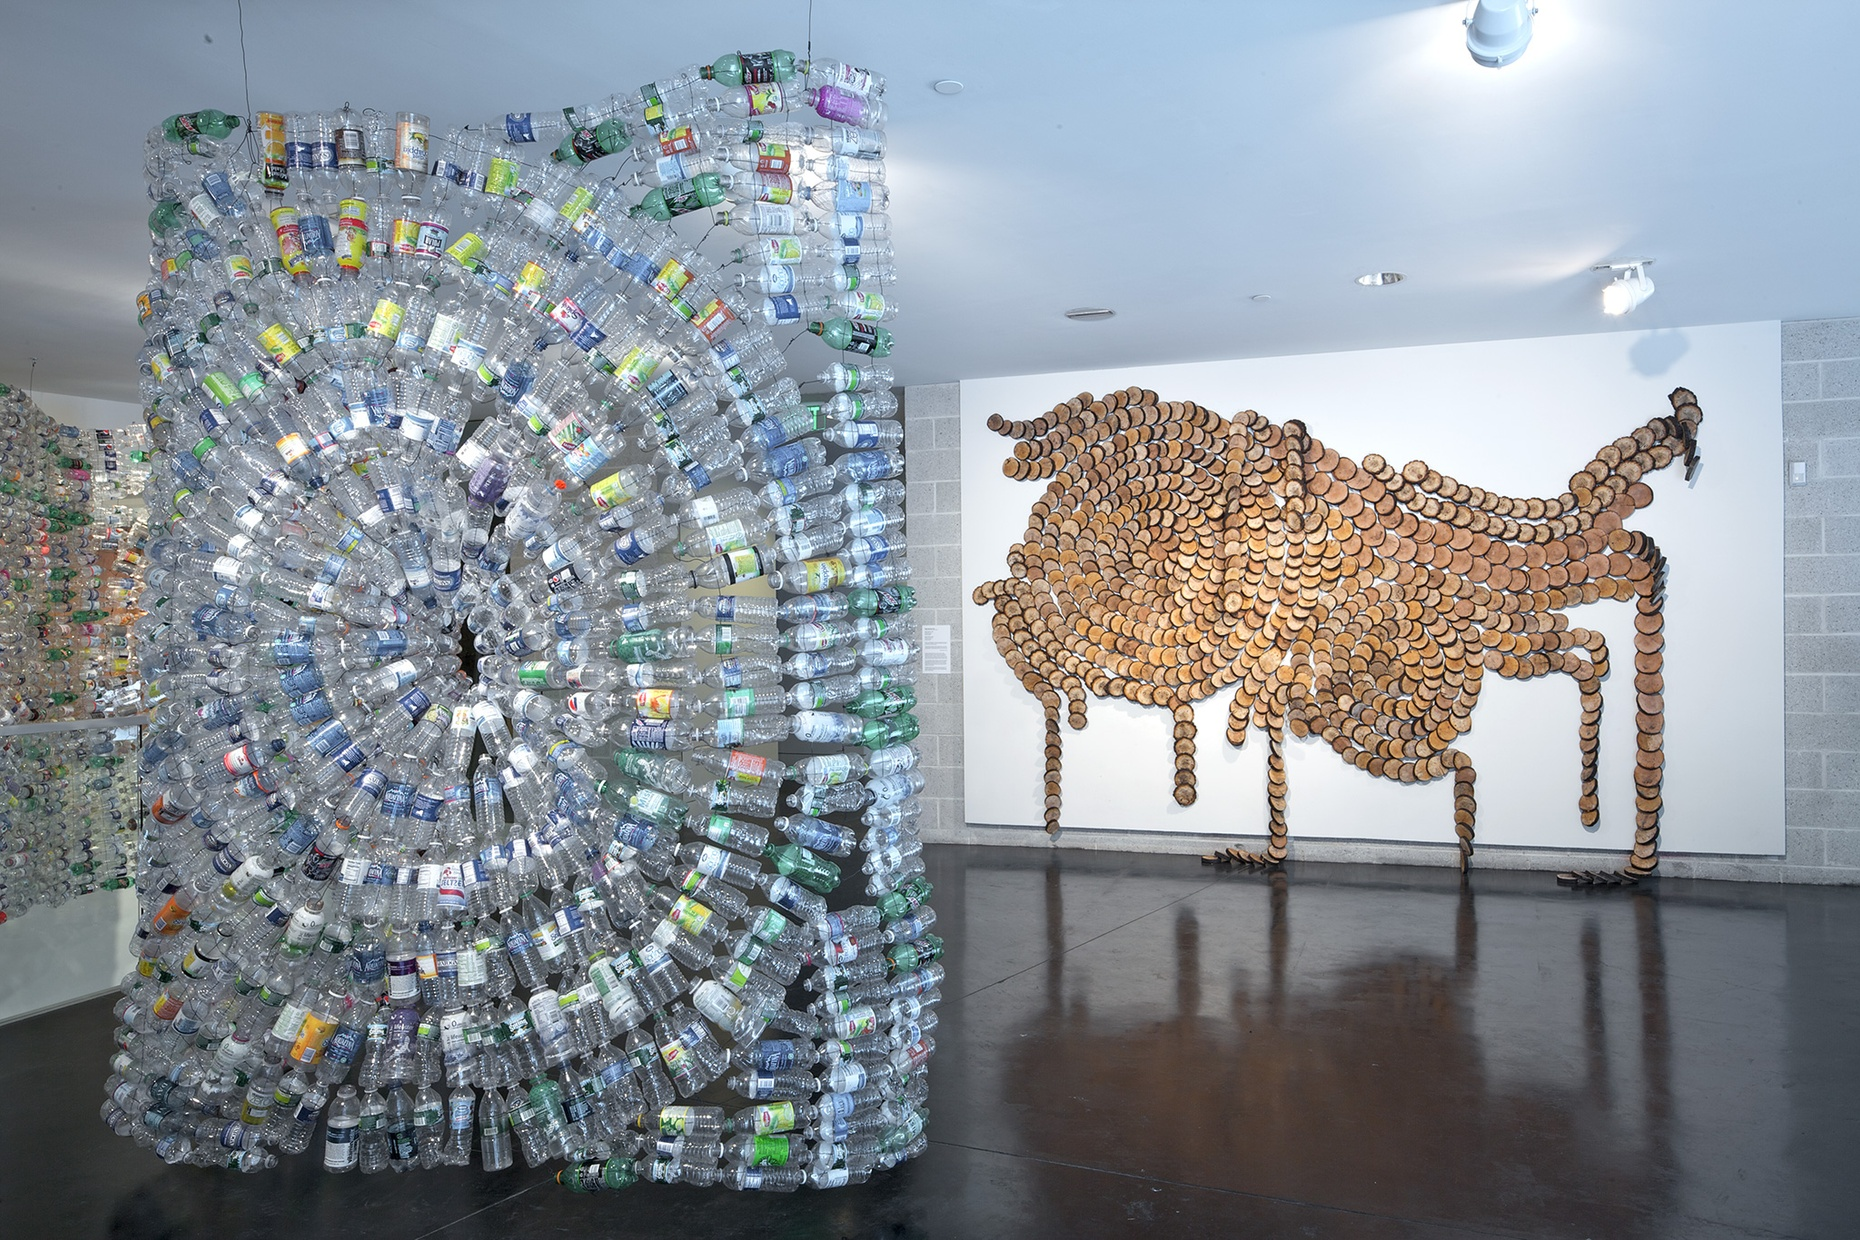 A swirly, three-dimensional sculpture made of plastic bottles in front of a white wall with an abstract design made of wooden circles.